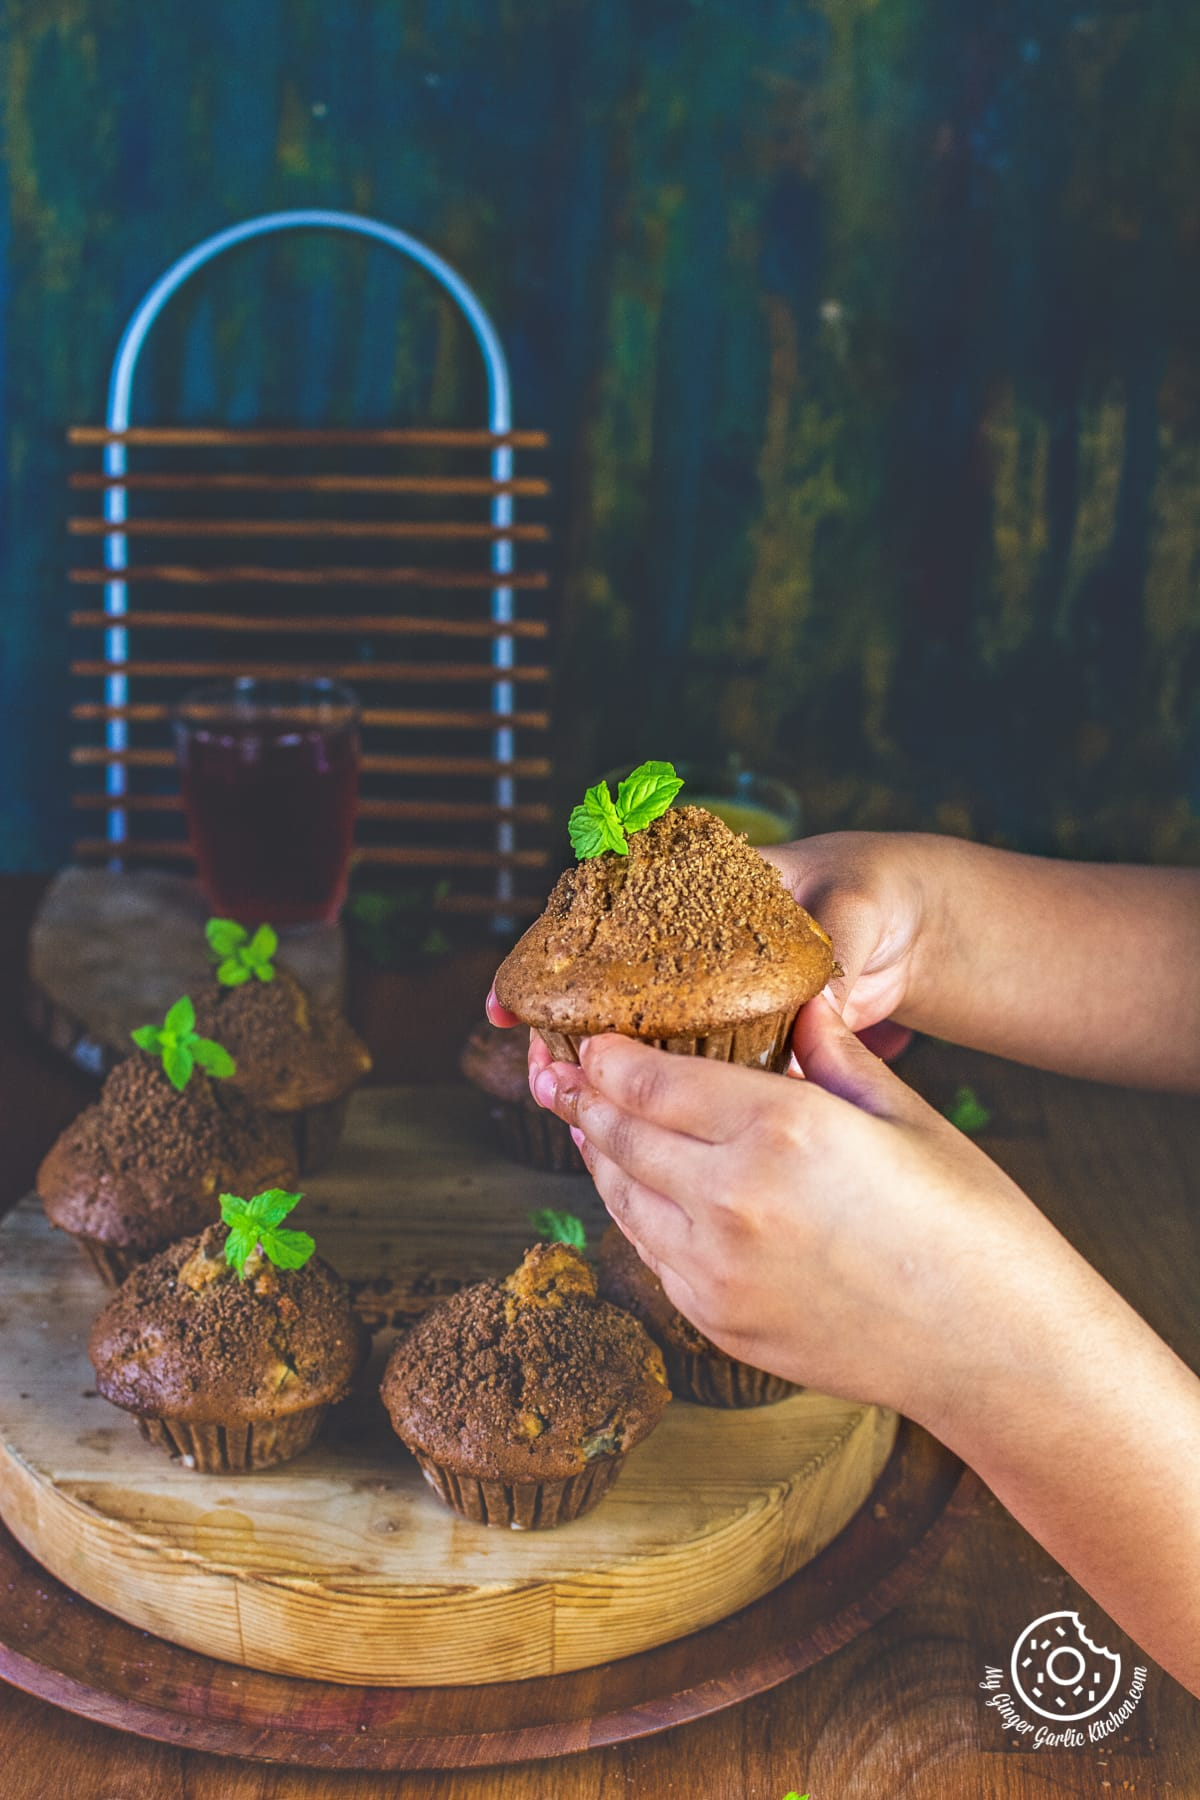 a kid holding whole wheat peach muffin topped with mint leaves